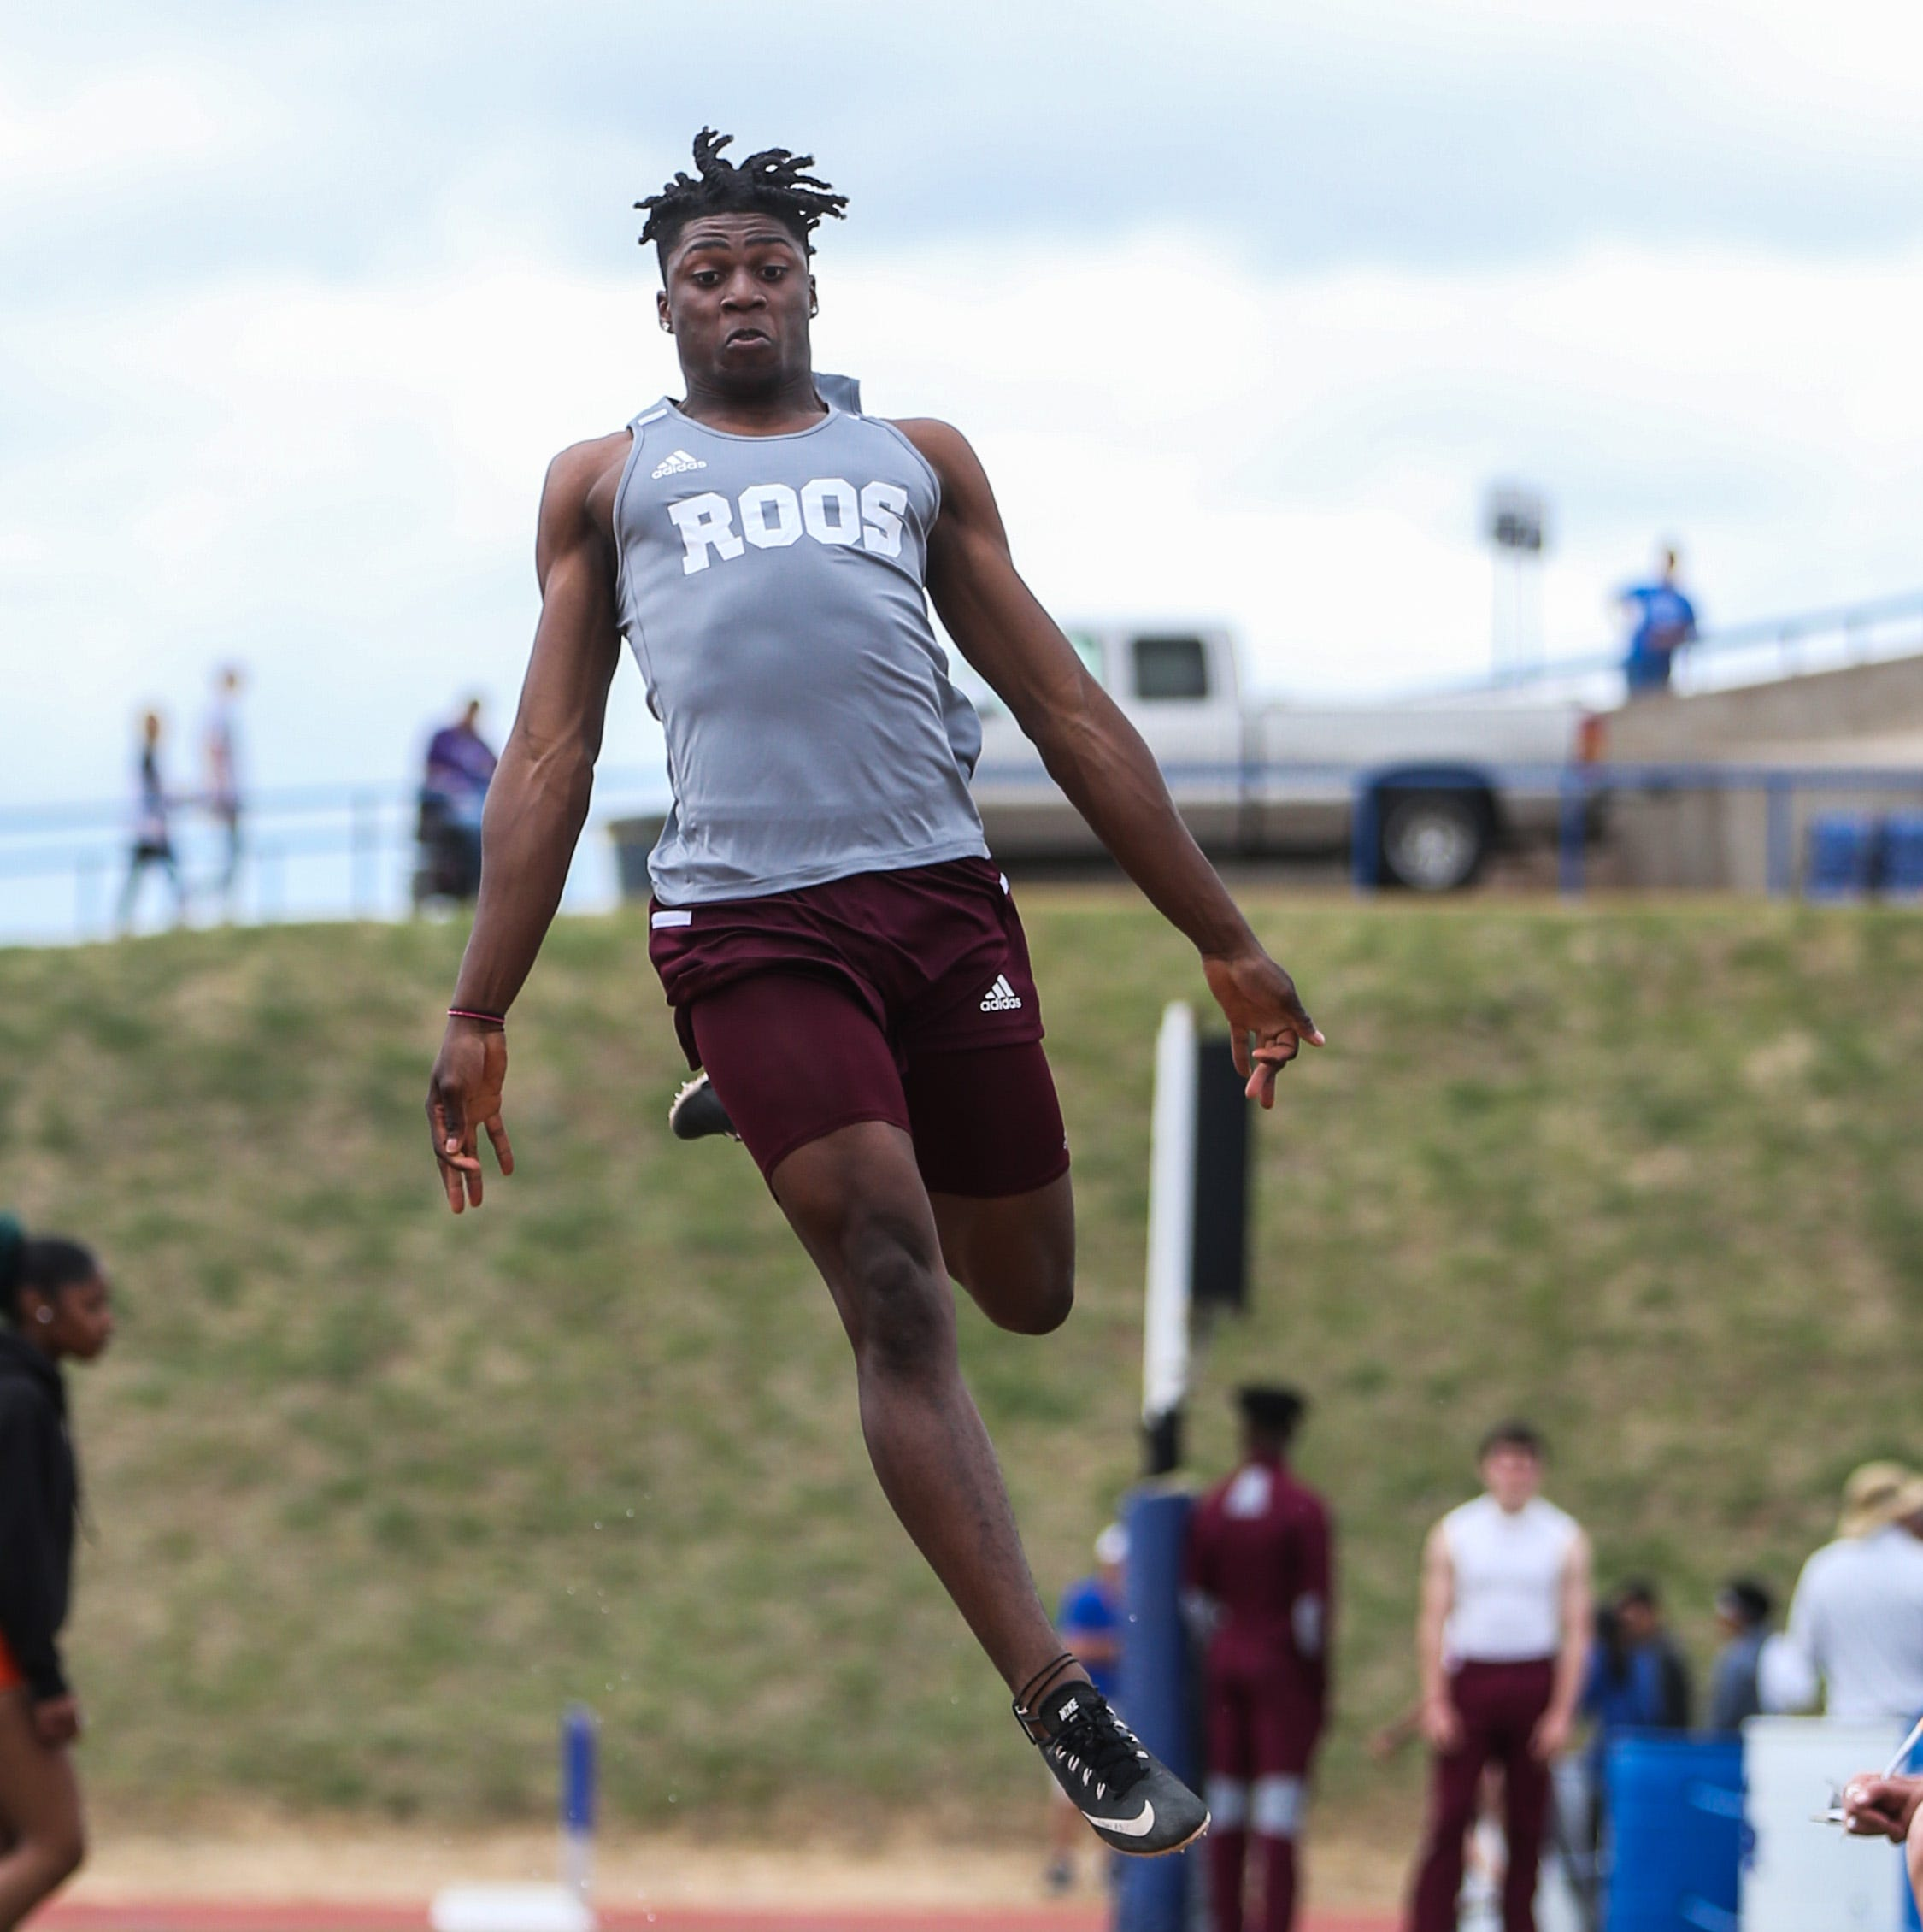 San Angelo Relays: Killeen's Price breaks 38-year-old long jump record